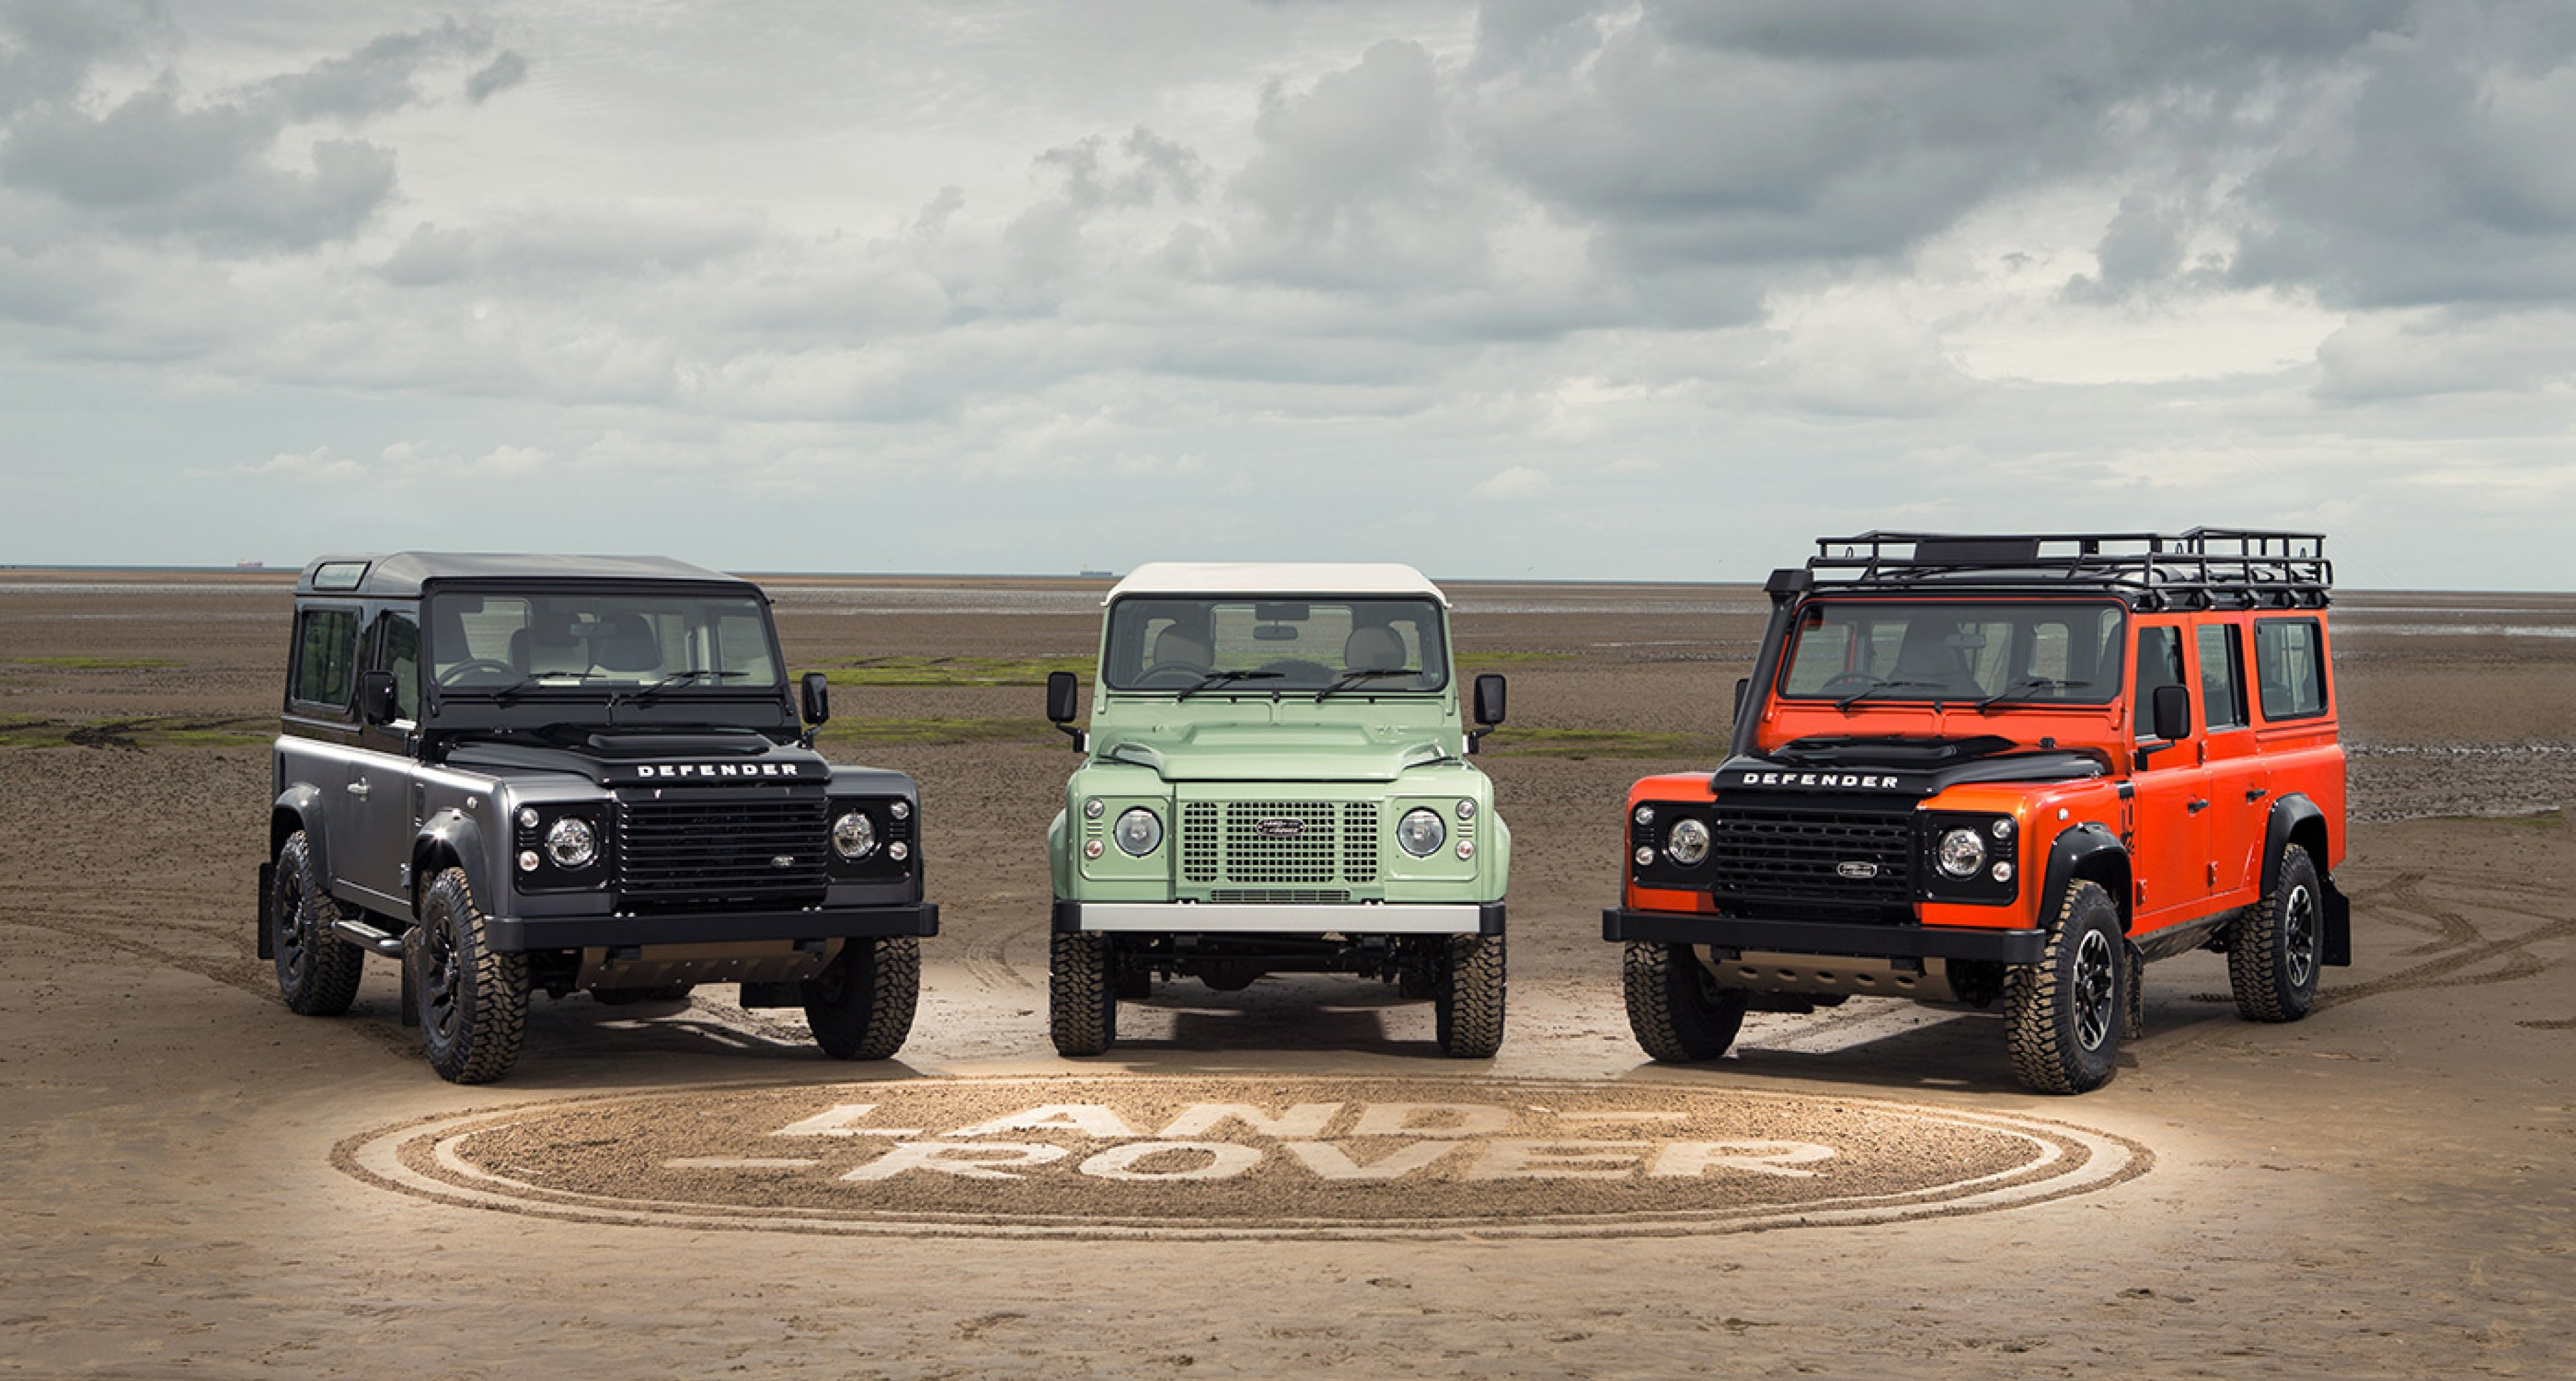 https://www.classicdriver.com/sites/default/files/styles/full_width_slider/public/article_images/rp-land-rover-defender-4-of-91rhd_crop.jpg?itok=1pierQe6